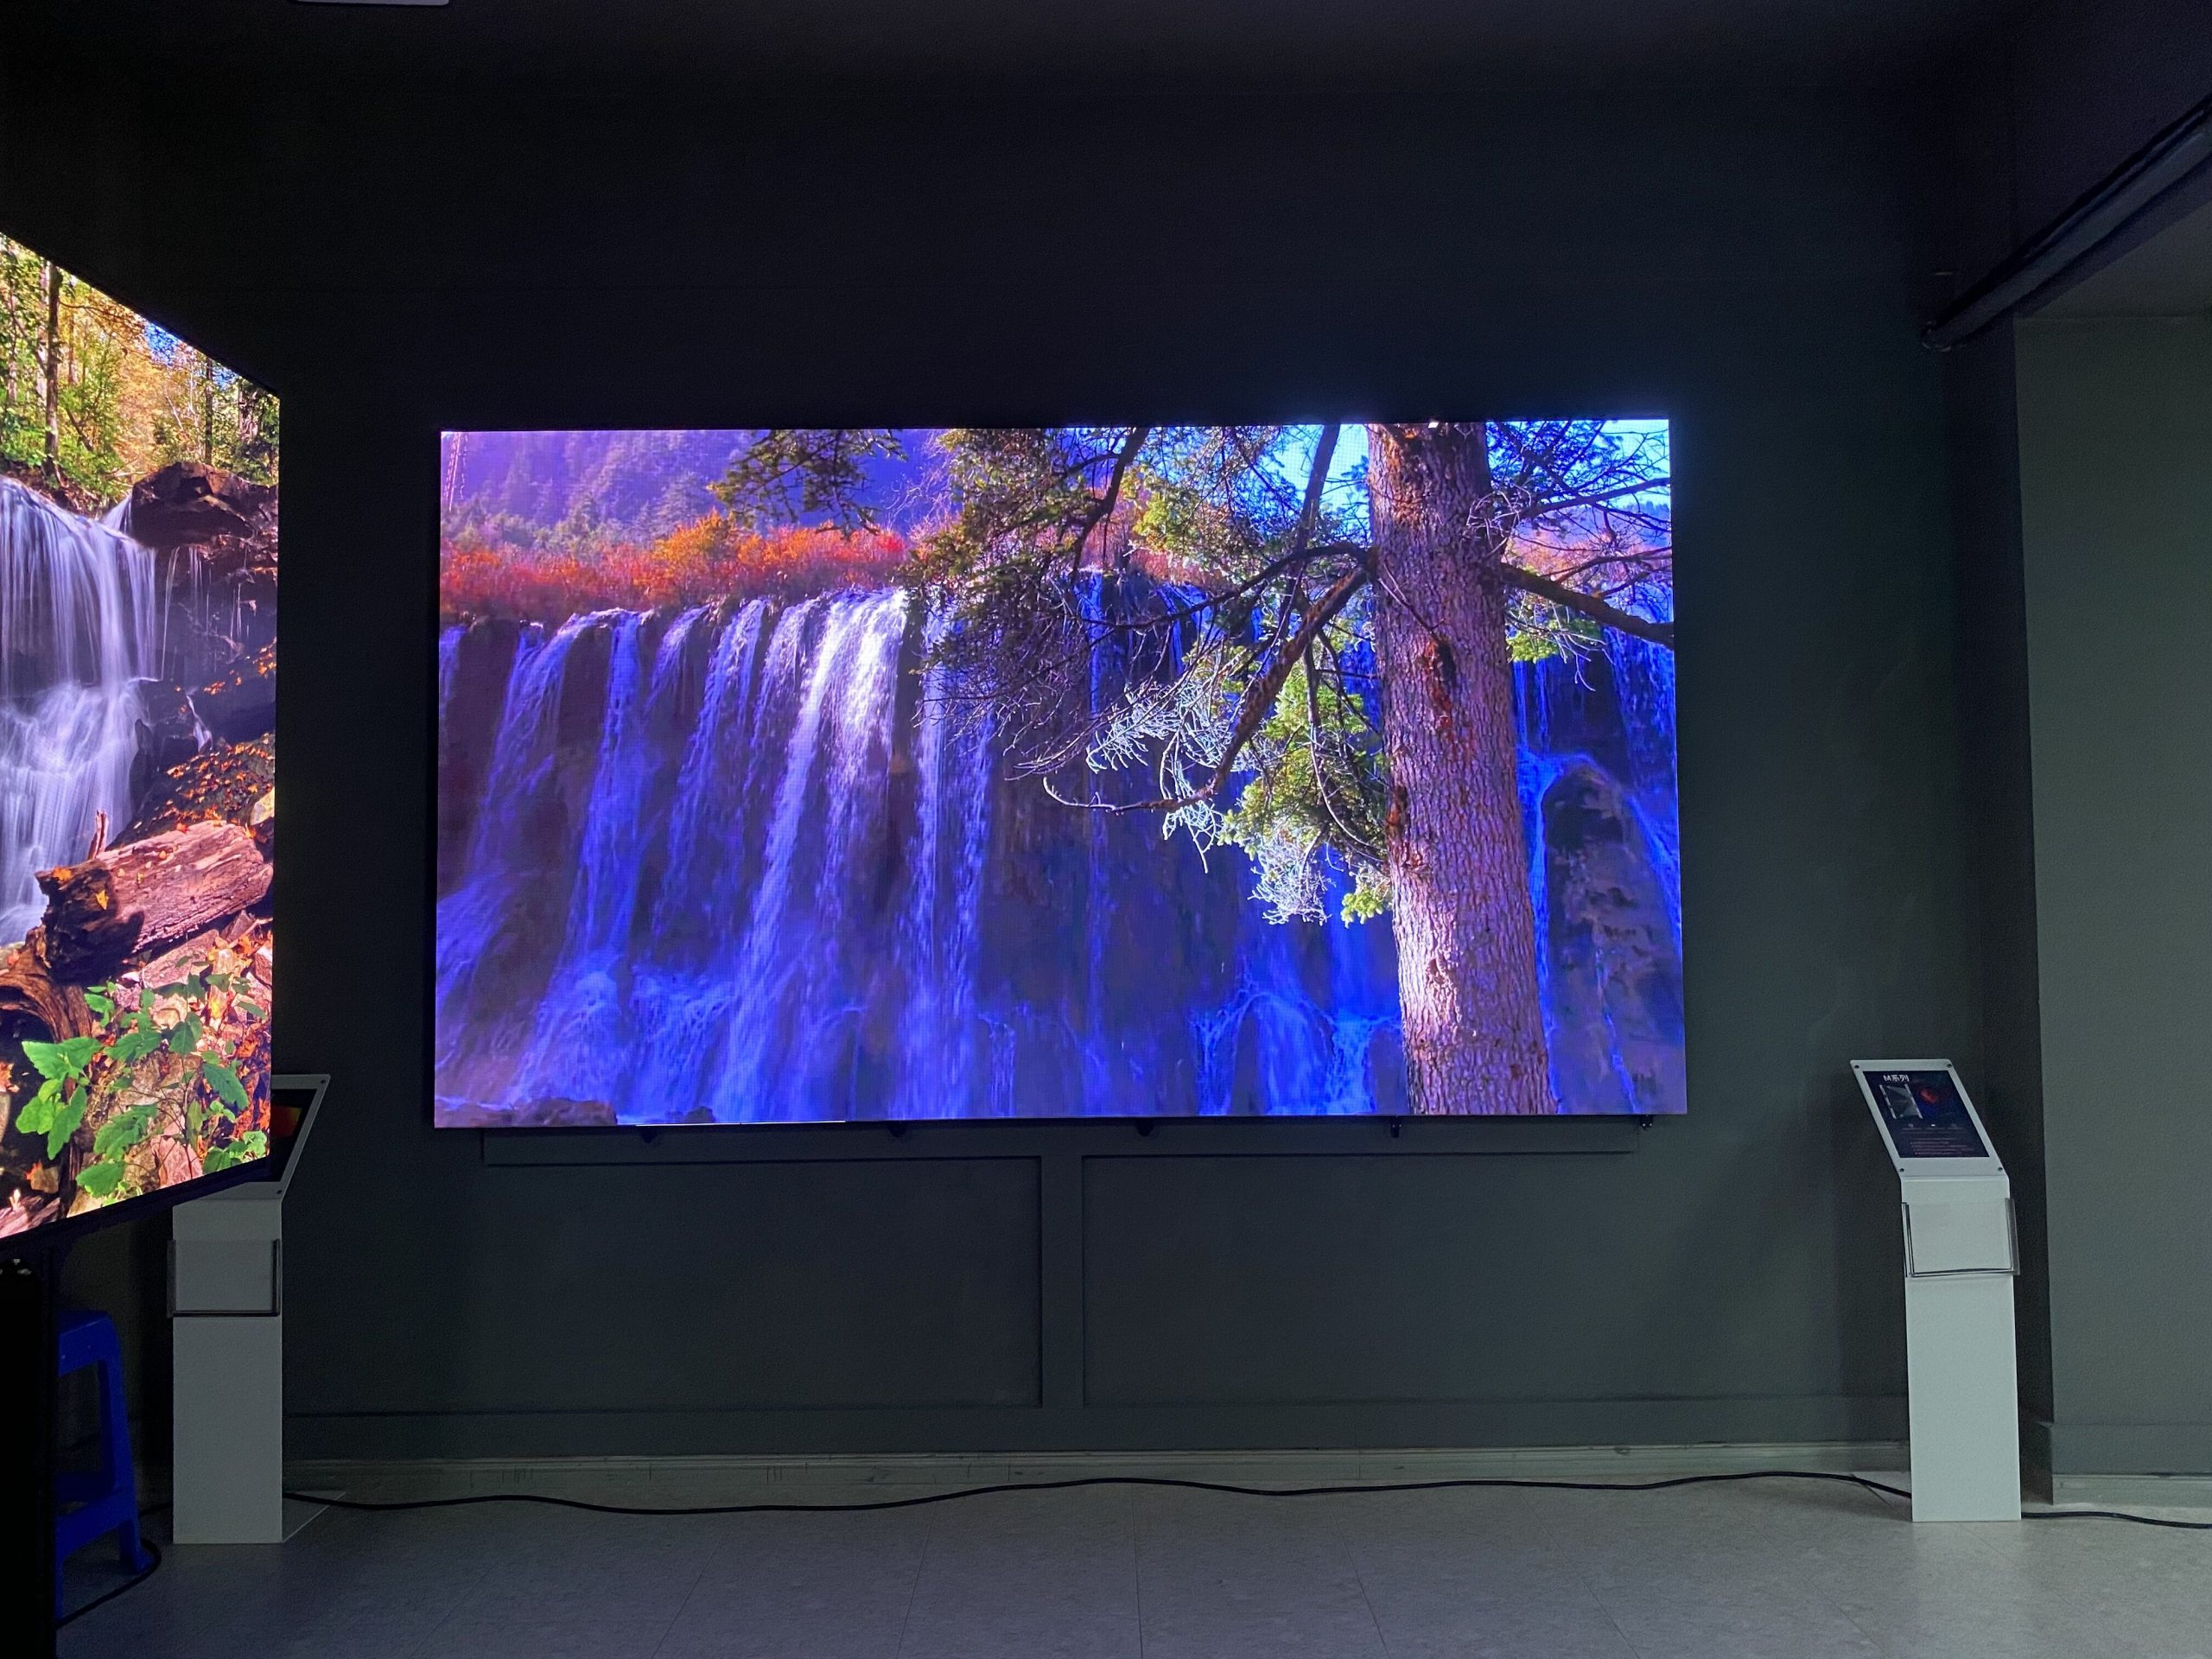 How can LED screen companies rise up and seize the high ground in the field of radio and television?